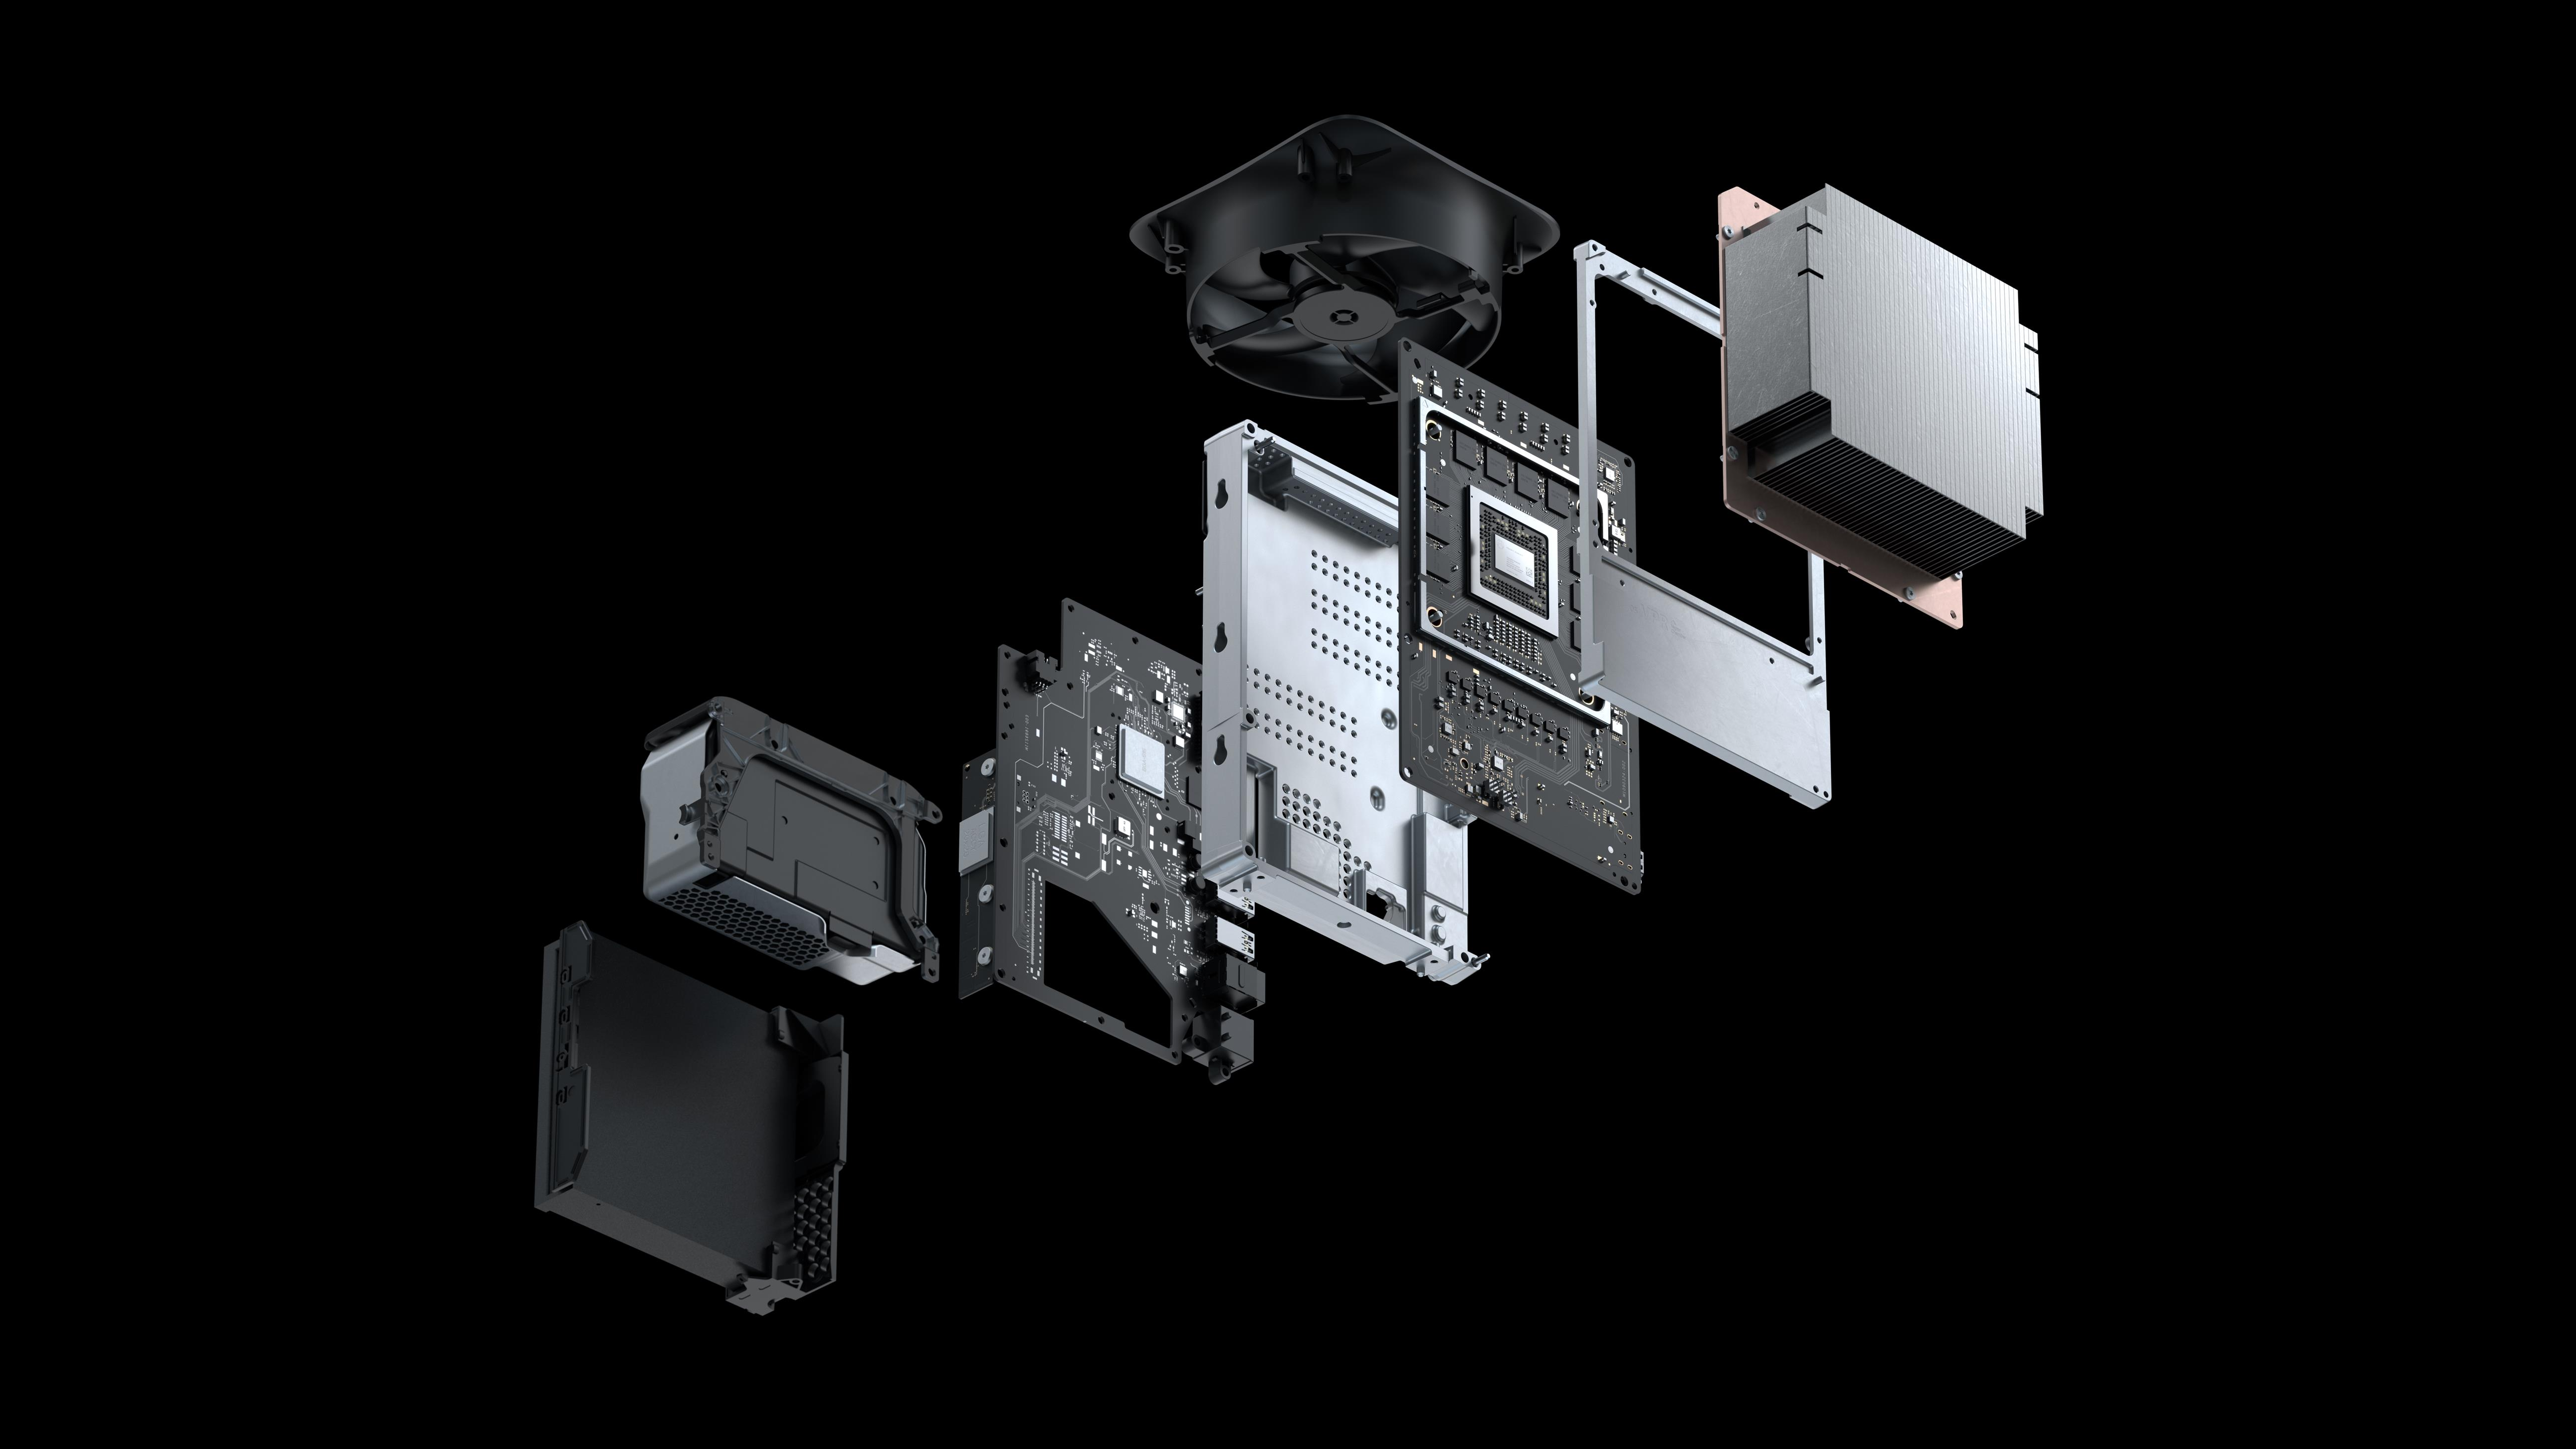 The internal components of the Xbox Series X